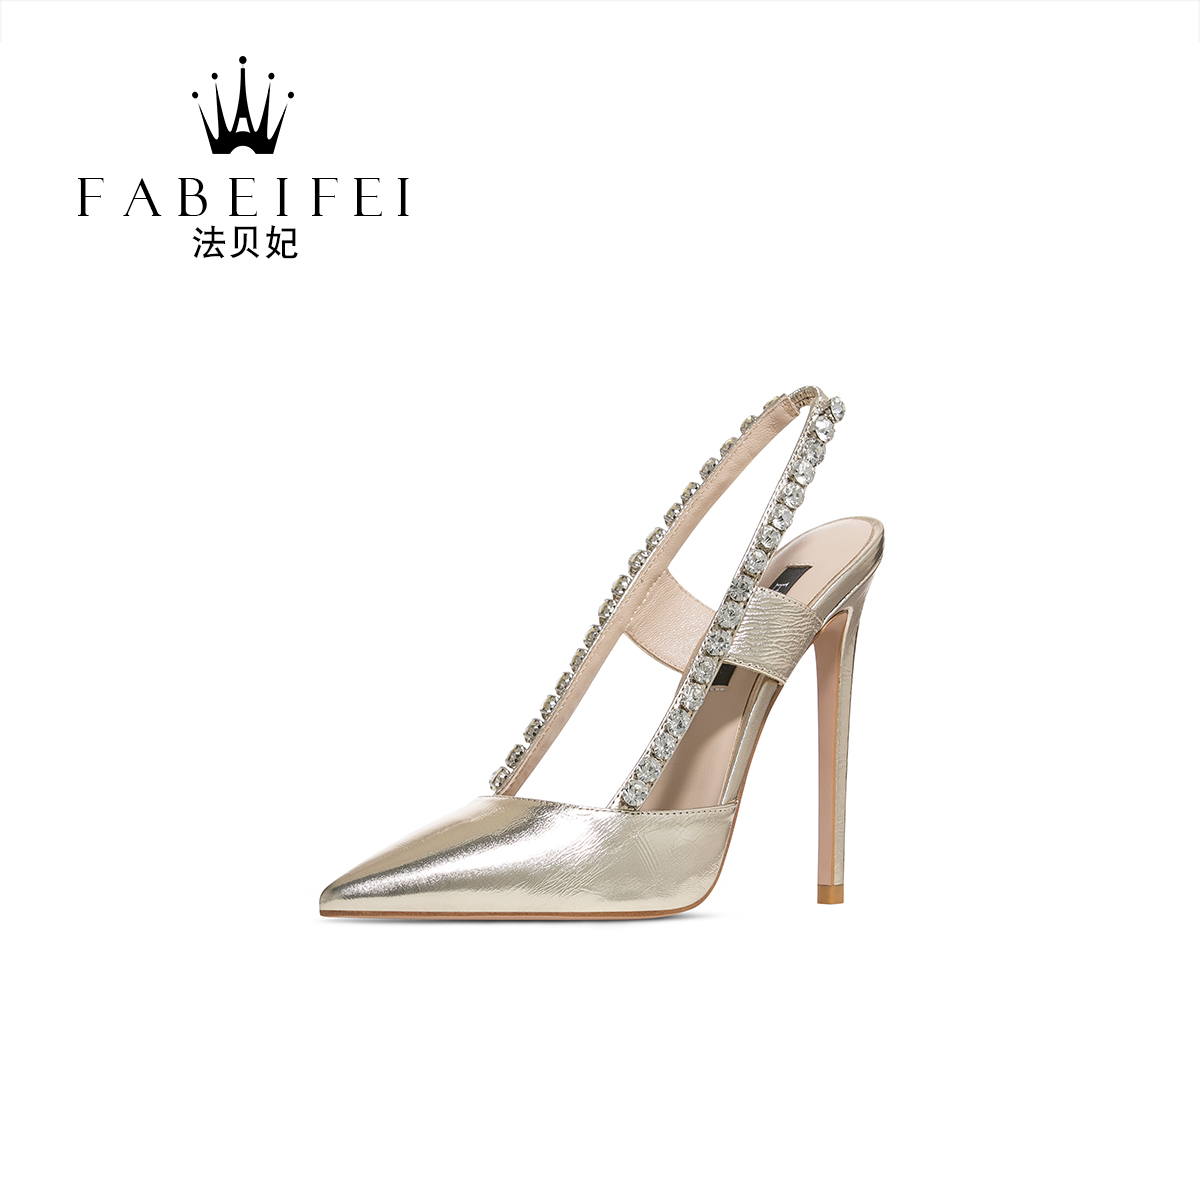 Fabregas 2020 spring and summer new pointy water diamond high-heeled shoes Baotou stiletto sandals for women